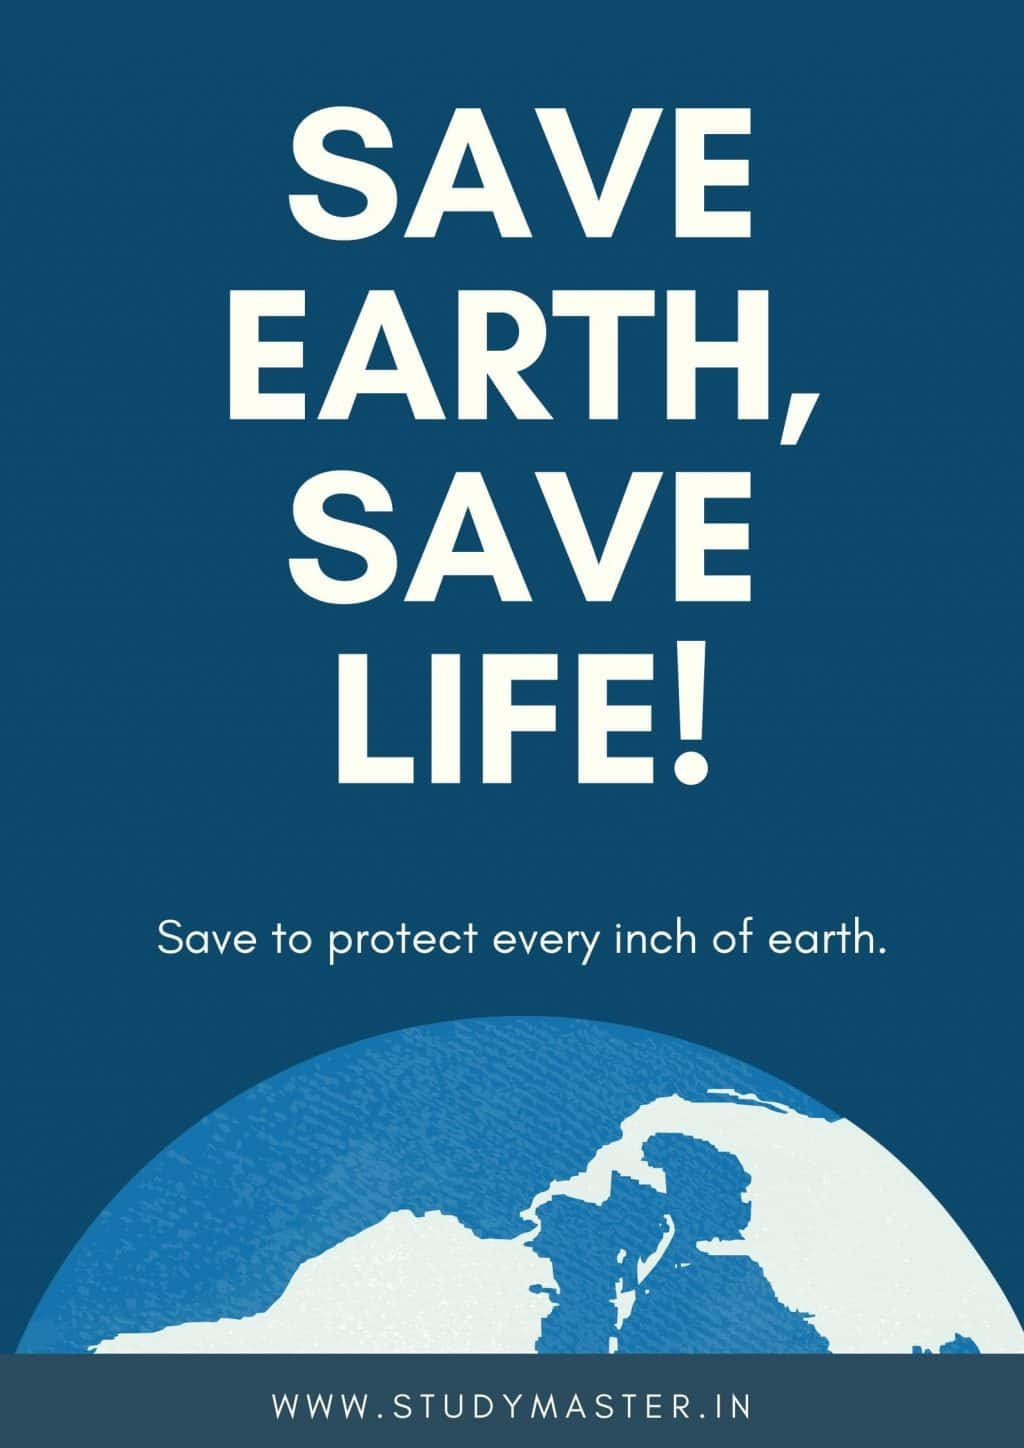 poster for save earth